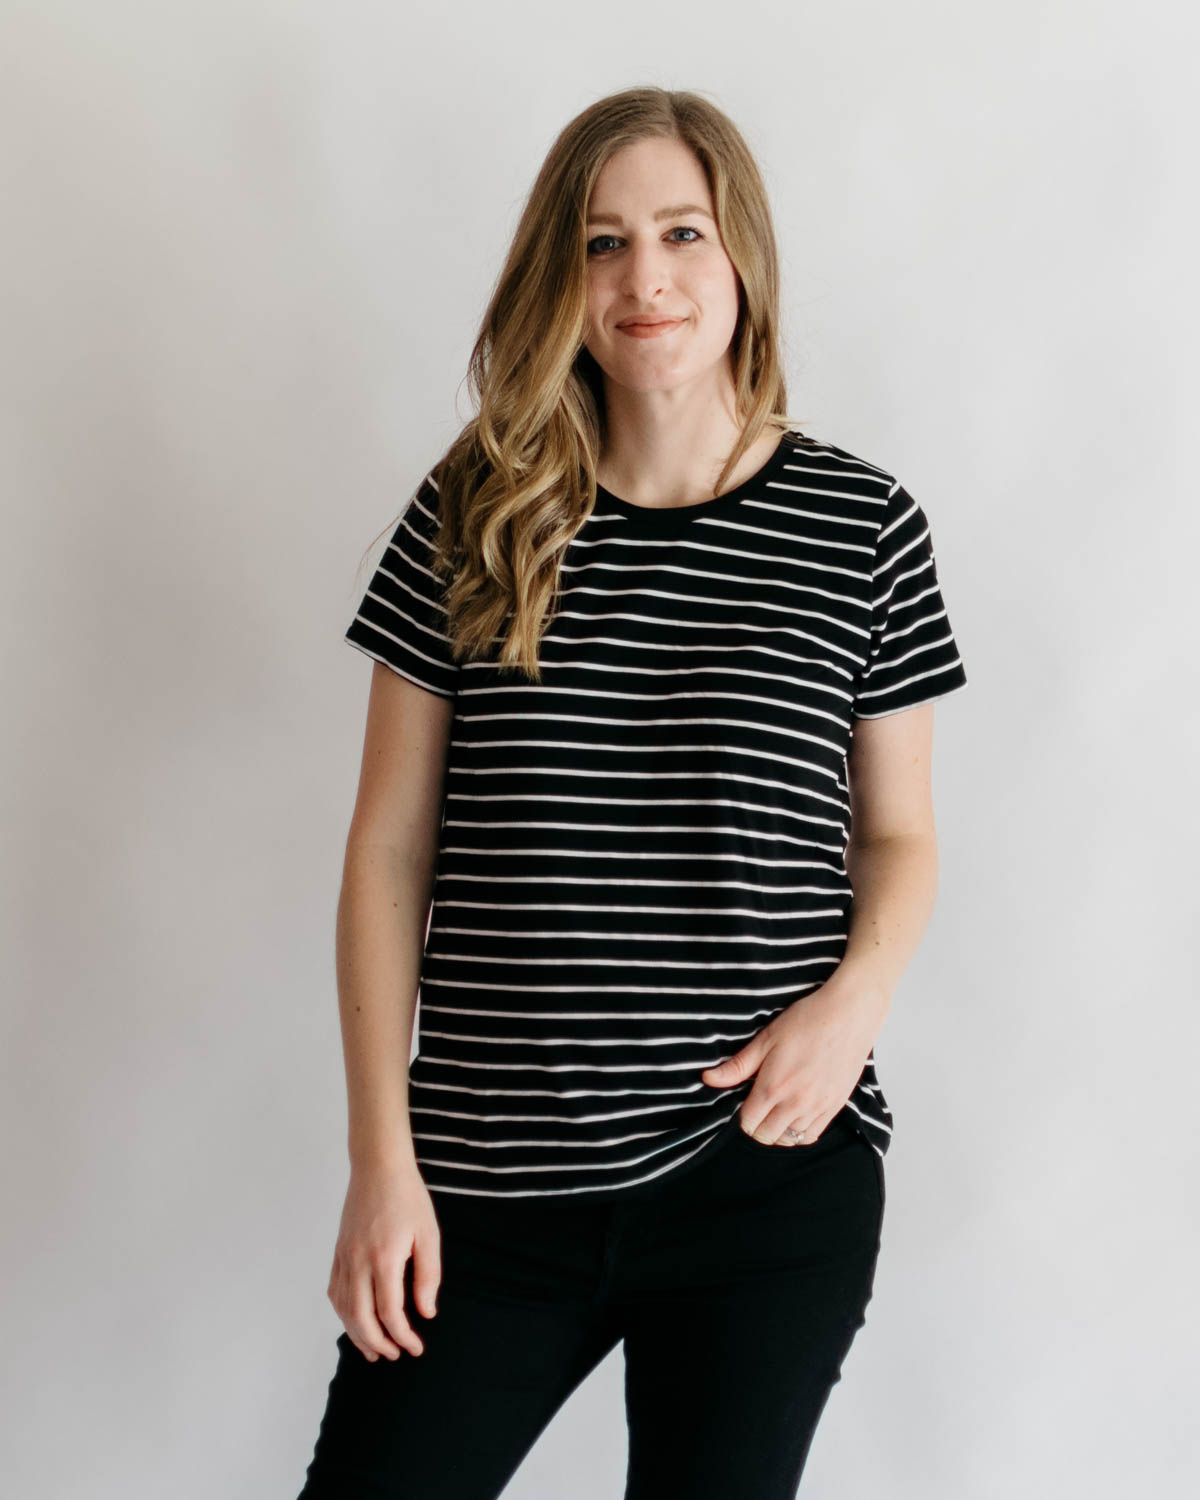 My 3 Favorite Knit T-Shirt Patterns